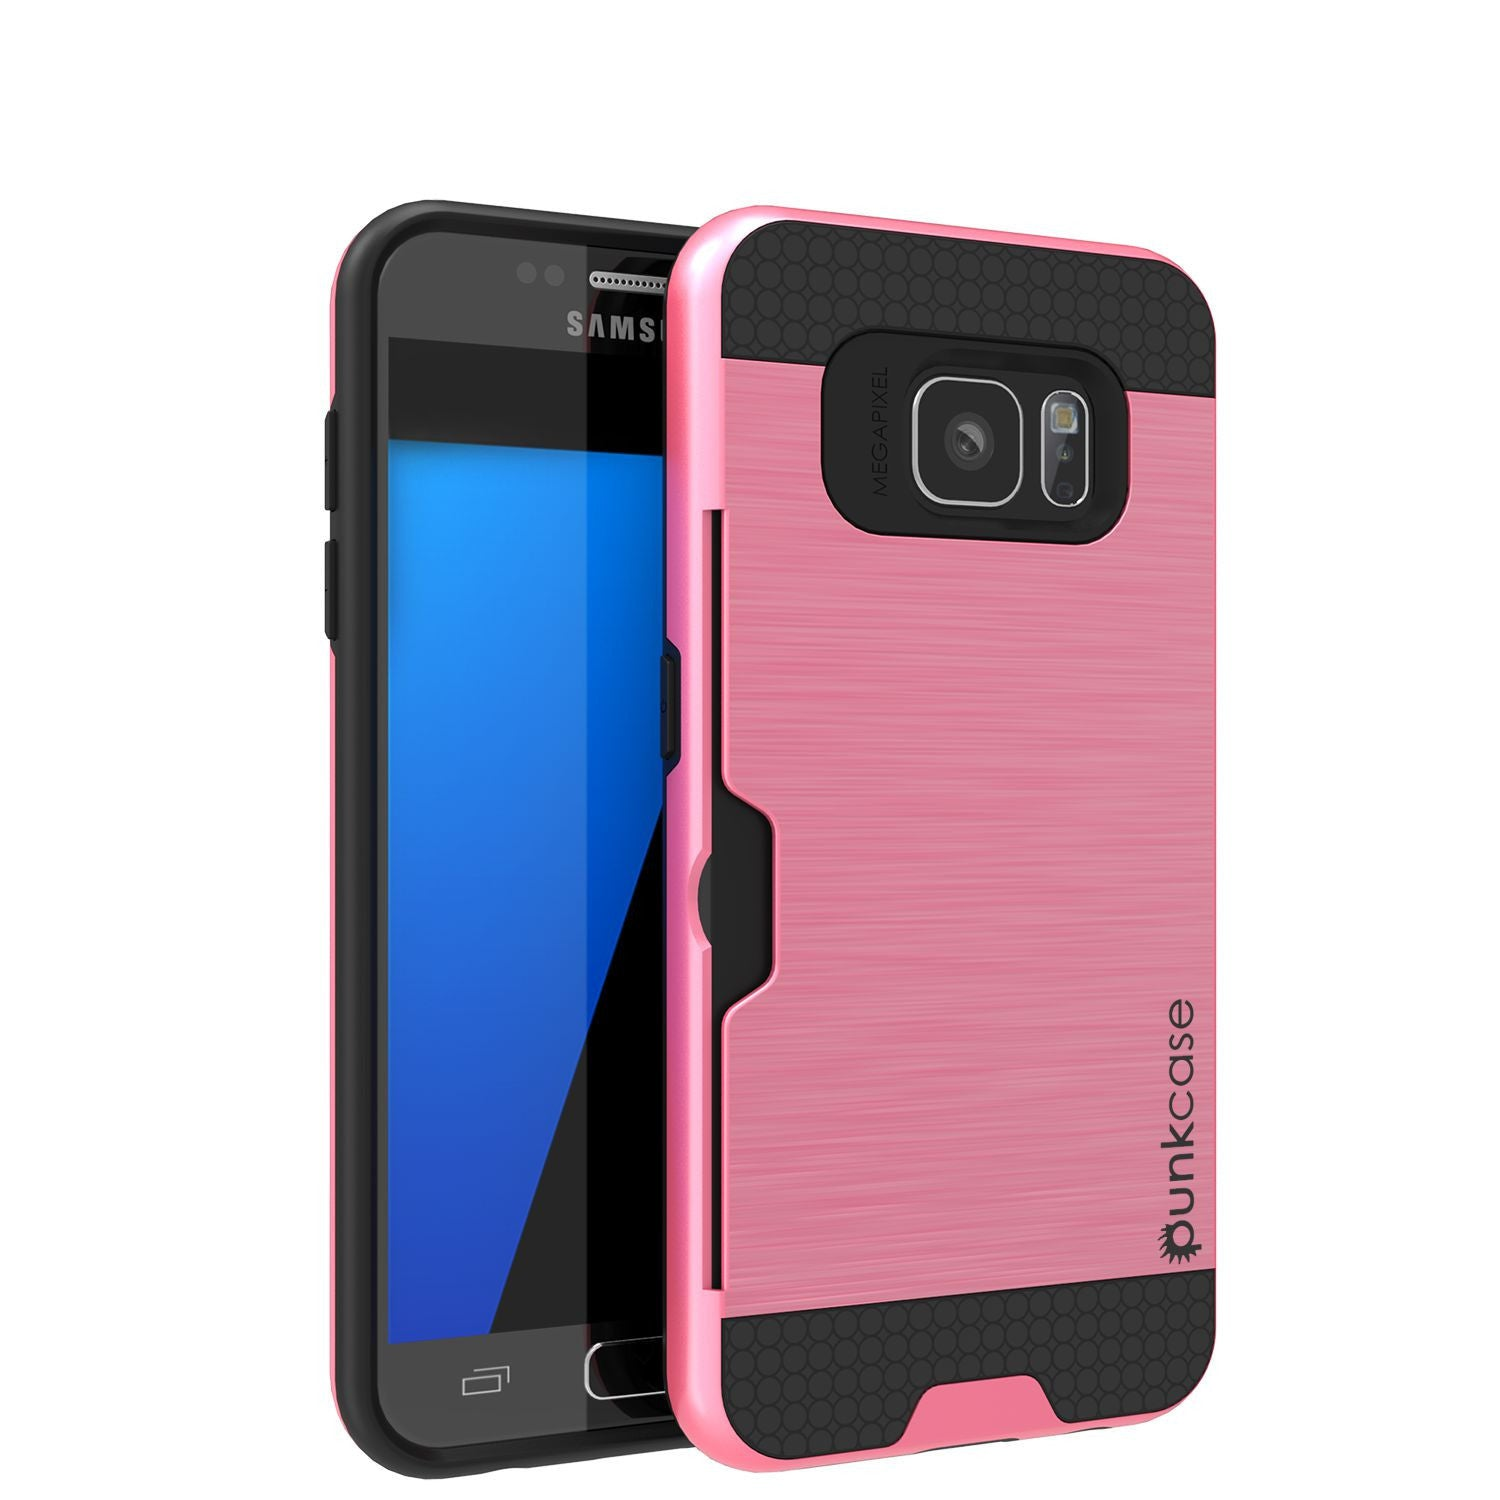 Galaxy s7 EDGE Case PunkCase SLOT Pink Series Slim Armor Soft Cover Case